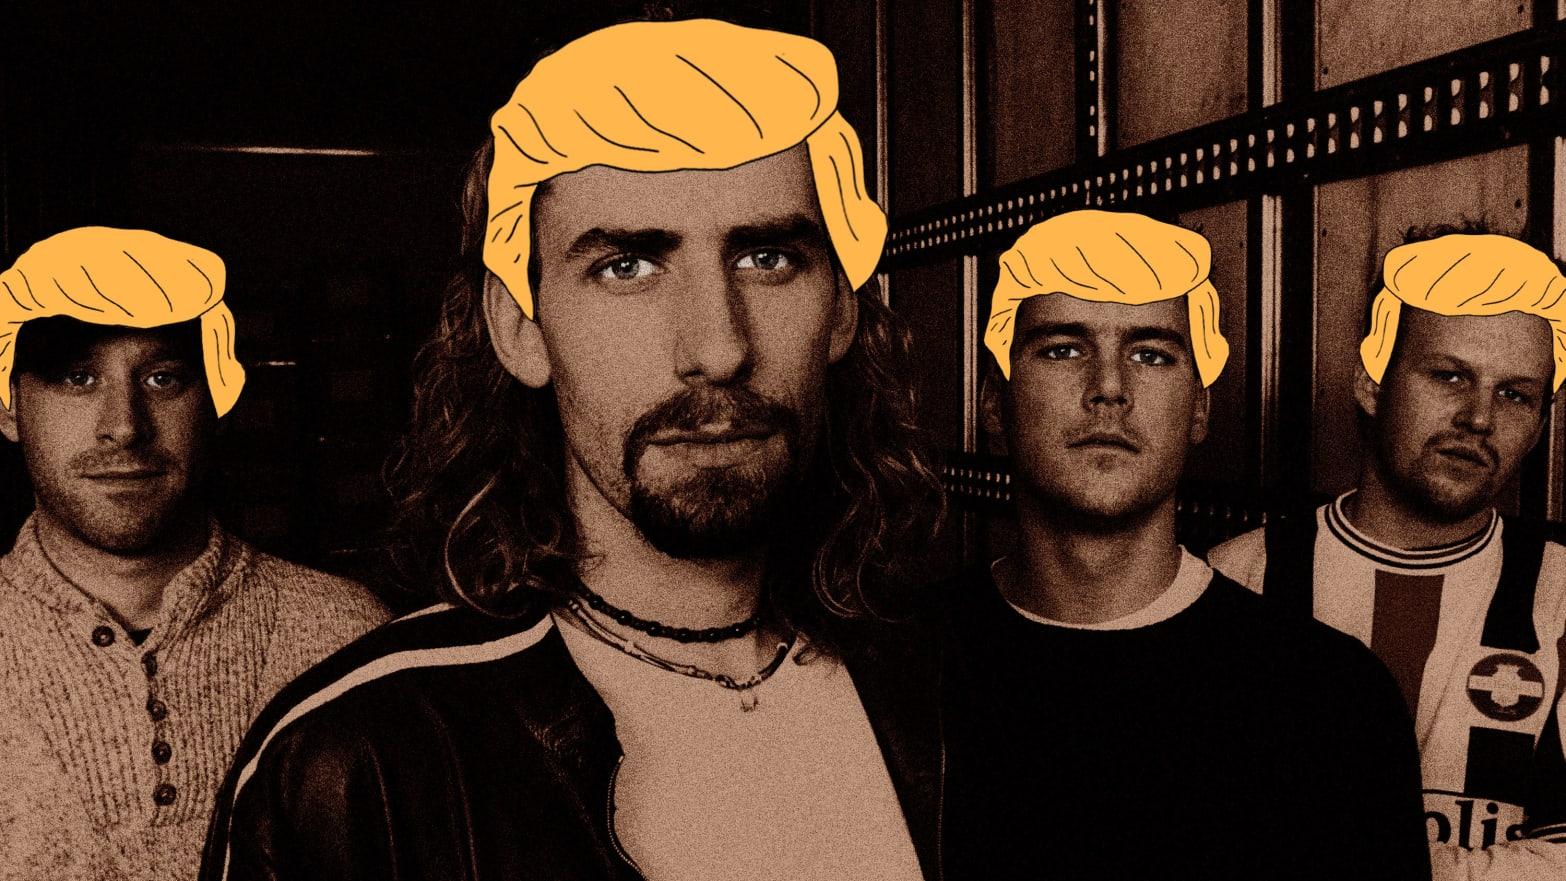 Twitter removes Trump's Nickelback video after copyright complaint